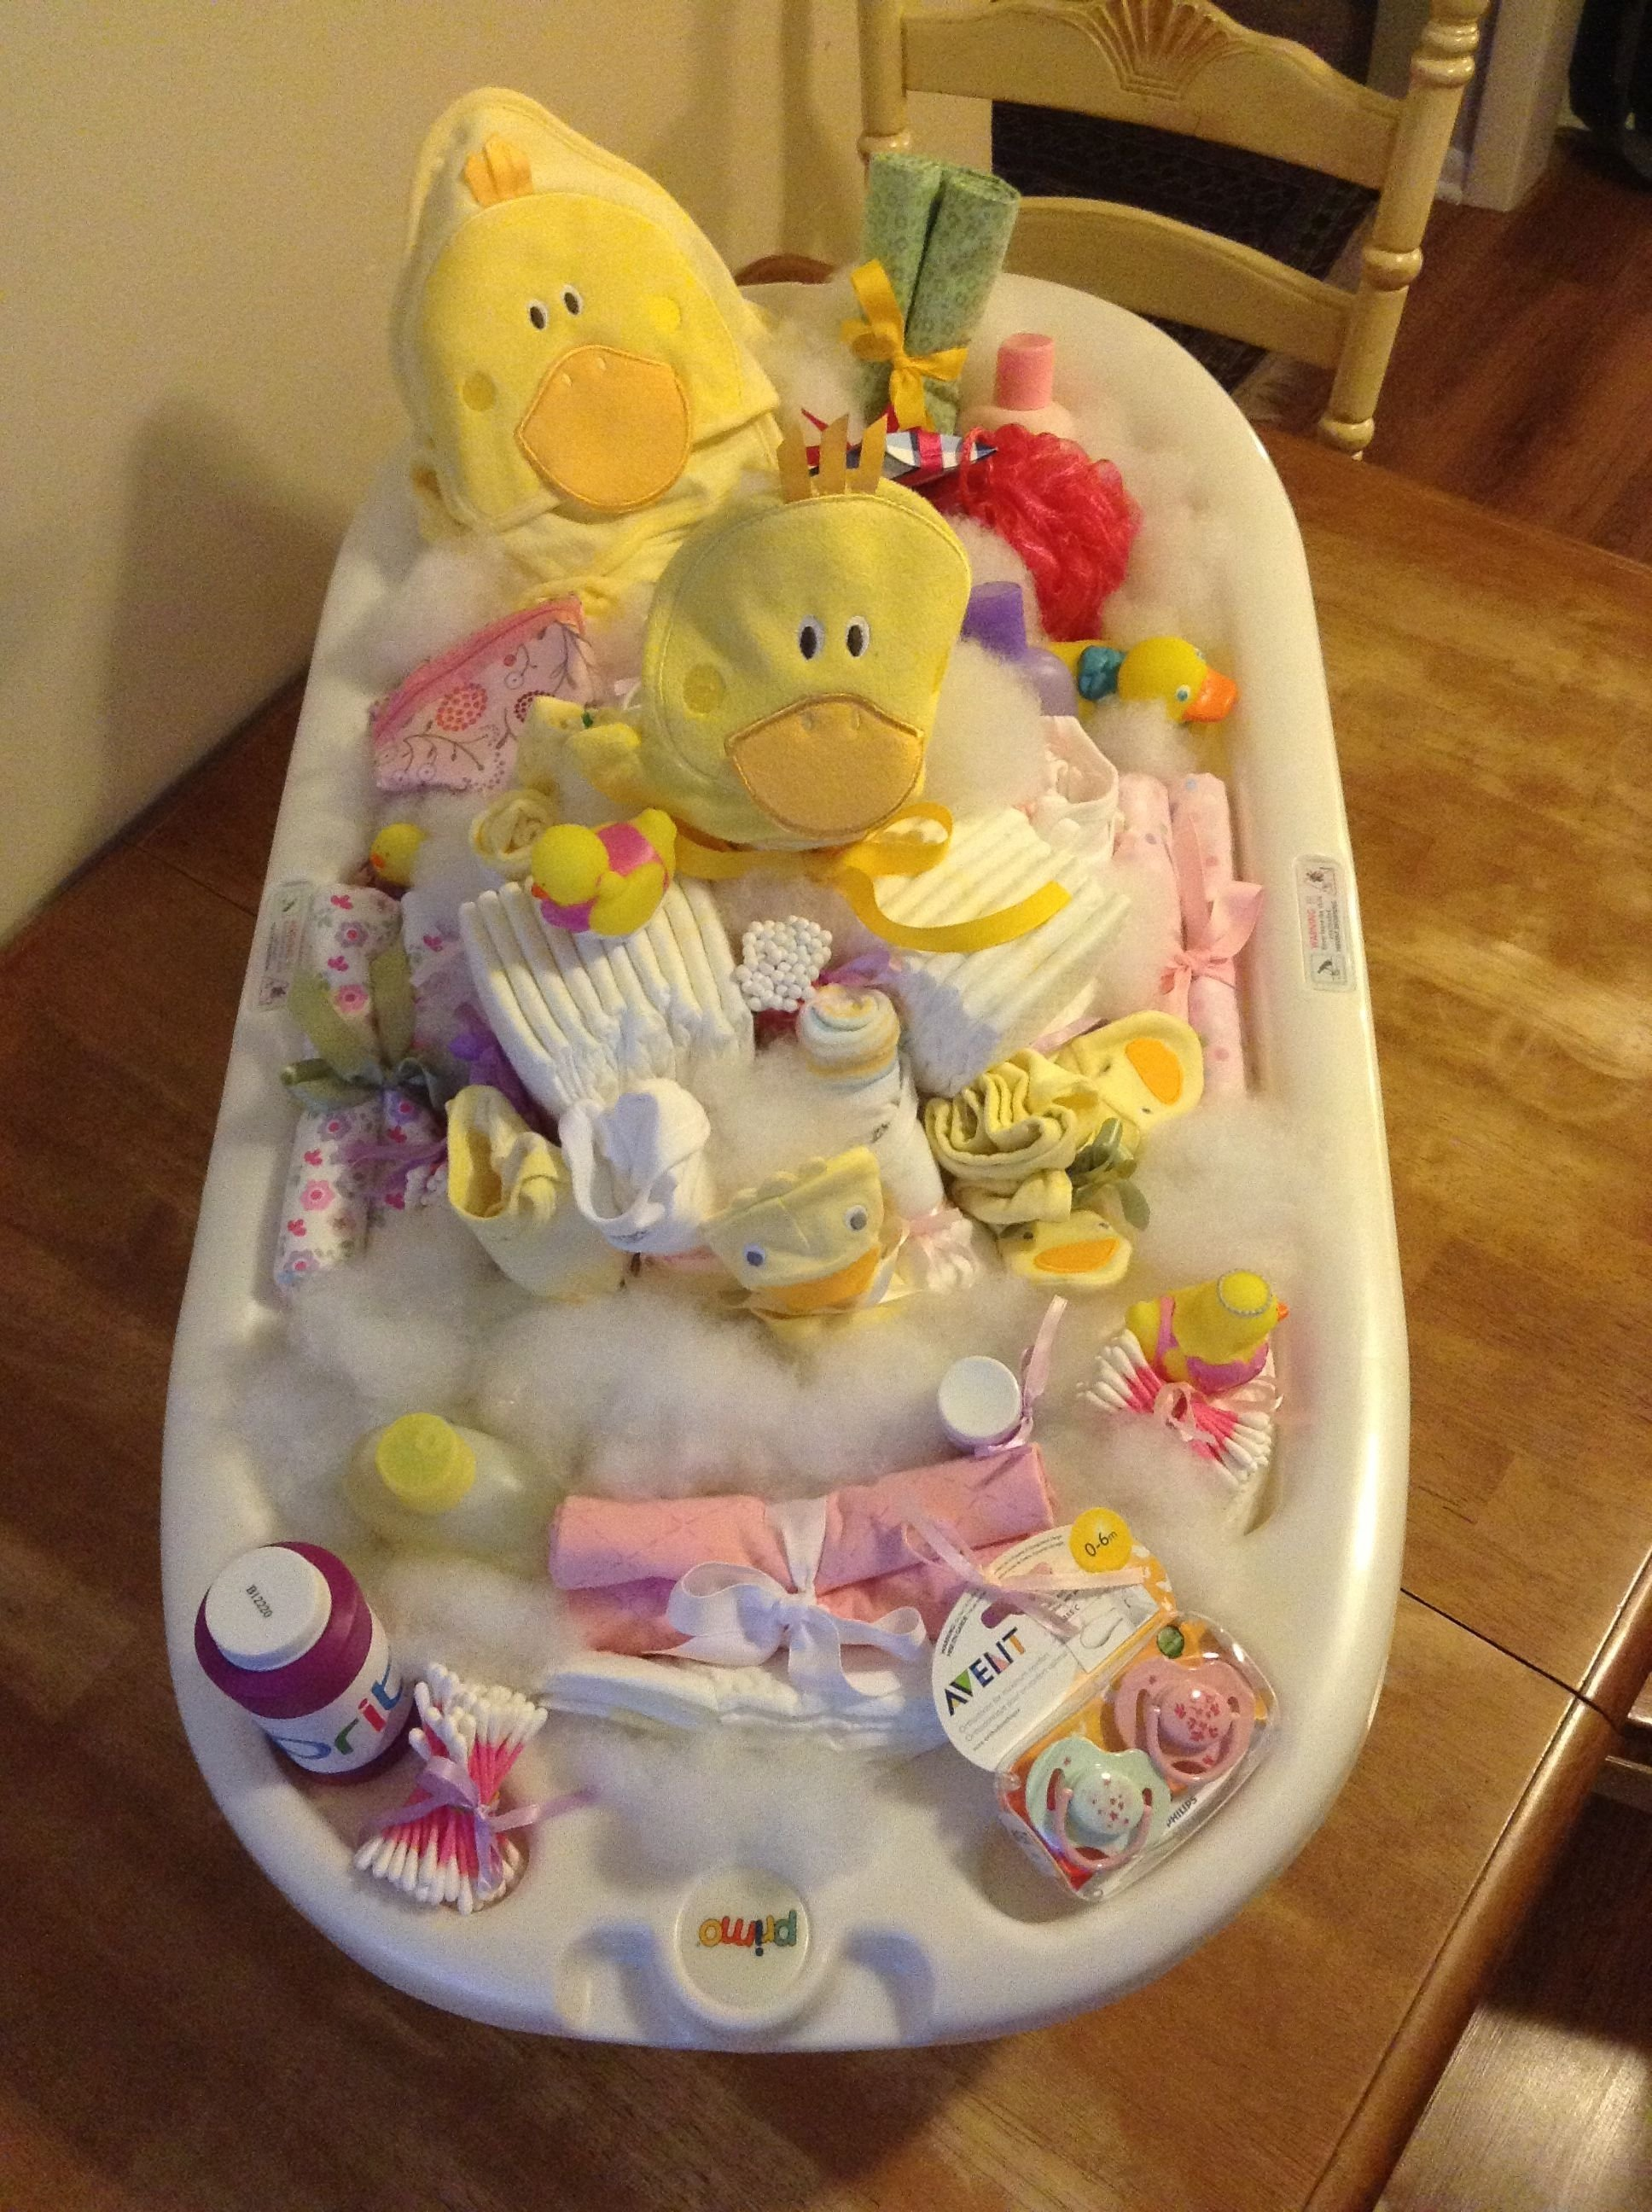 10 Stylish Homemade Baby Shower Gift Ideas sweet baby shower gift the base of the tub is filled with diapers 1 2021